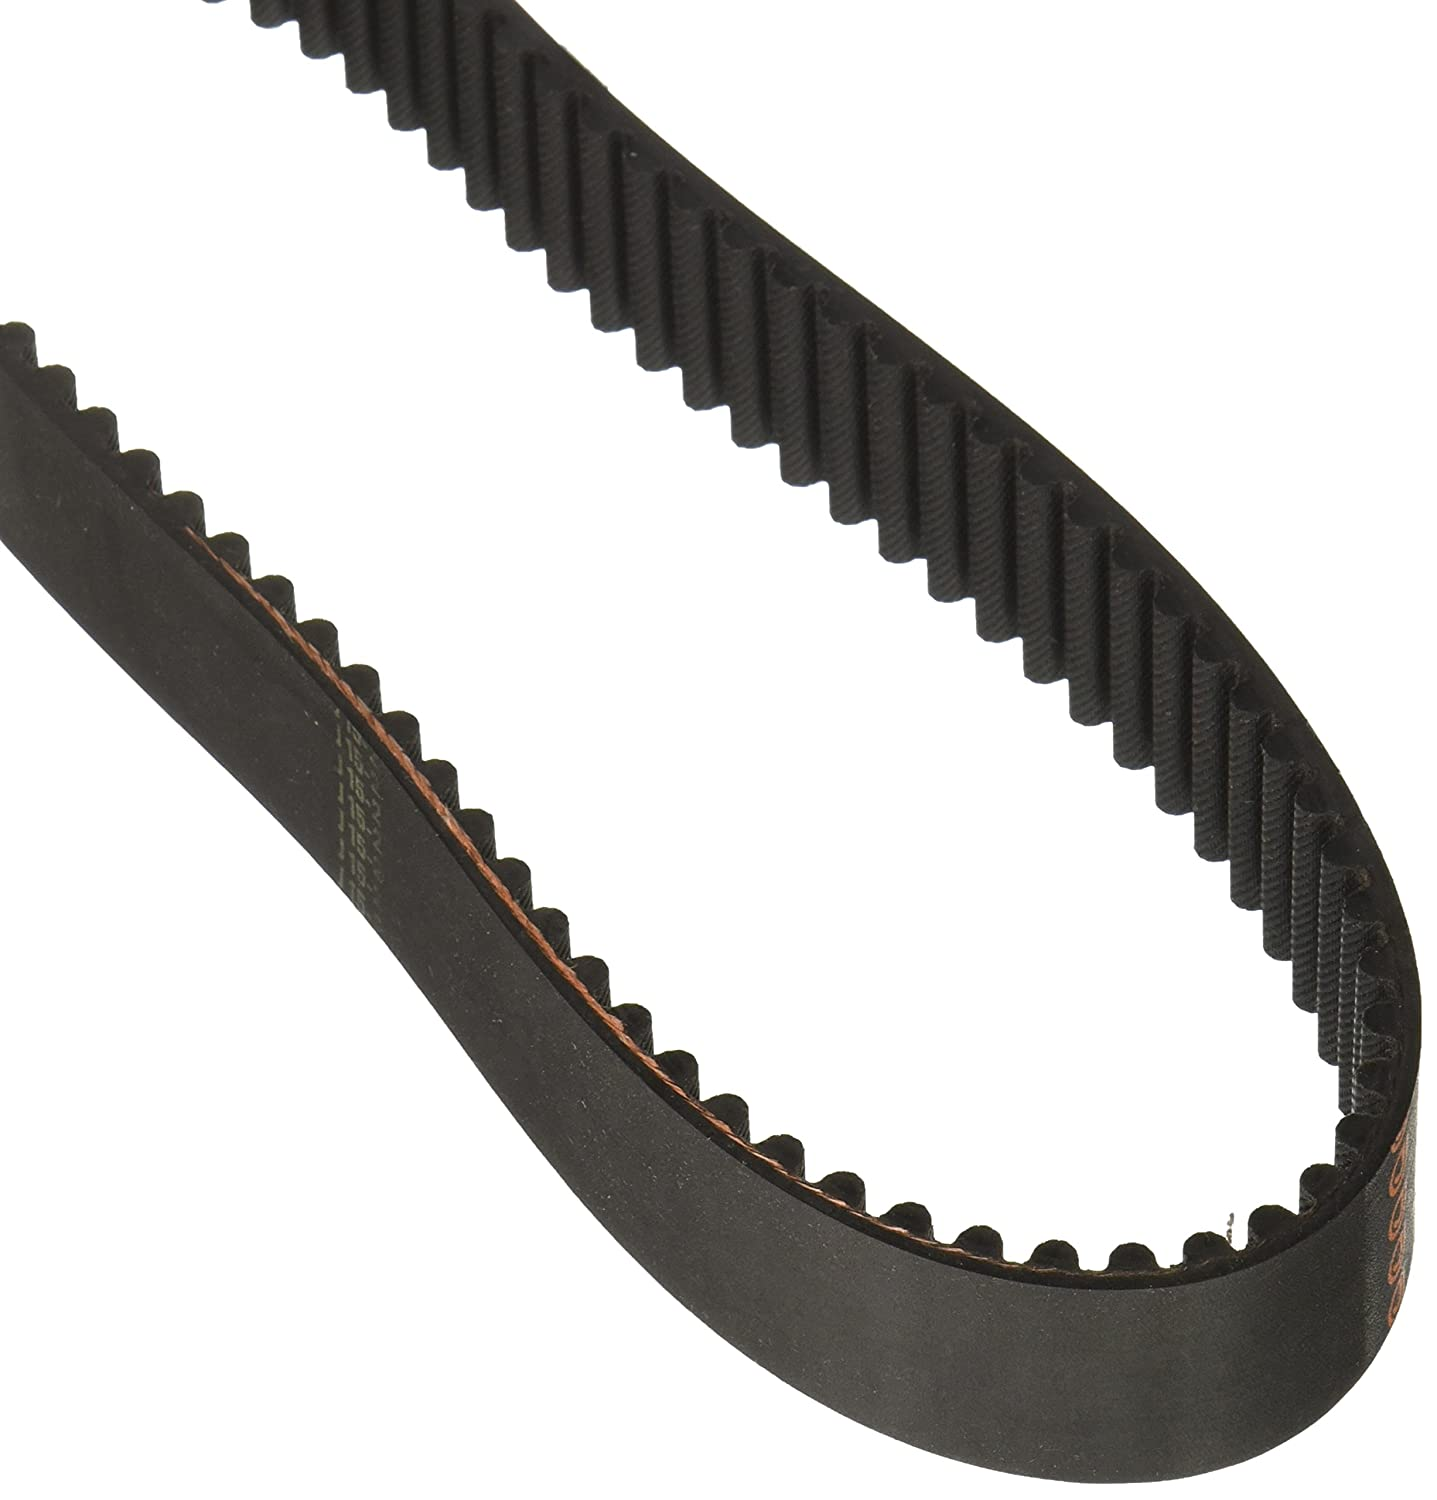 D/&D PowerDrive 500-5M-09 Timing Belt